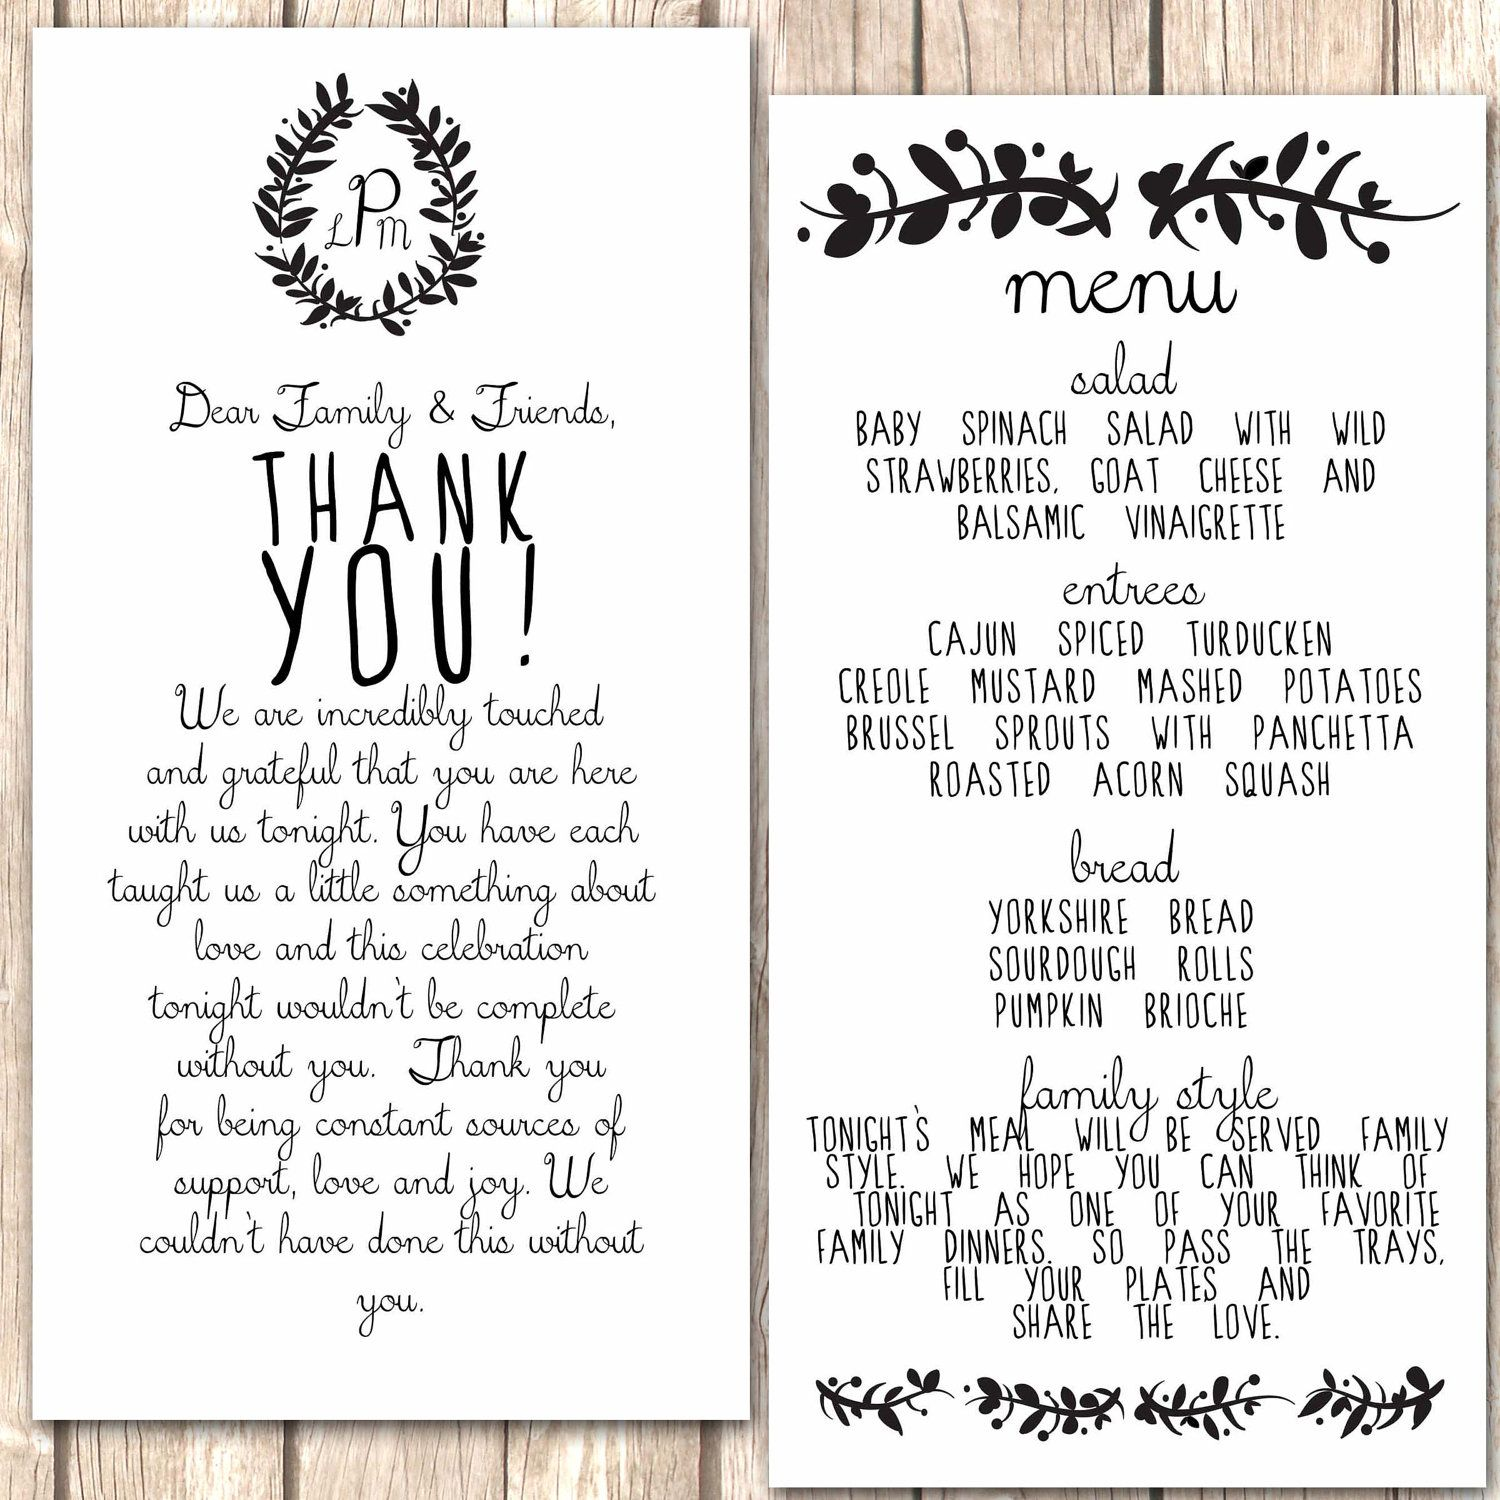 thank you cards wedding Whimsical Menu and Thank You Card for Wedding Dinner